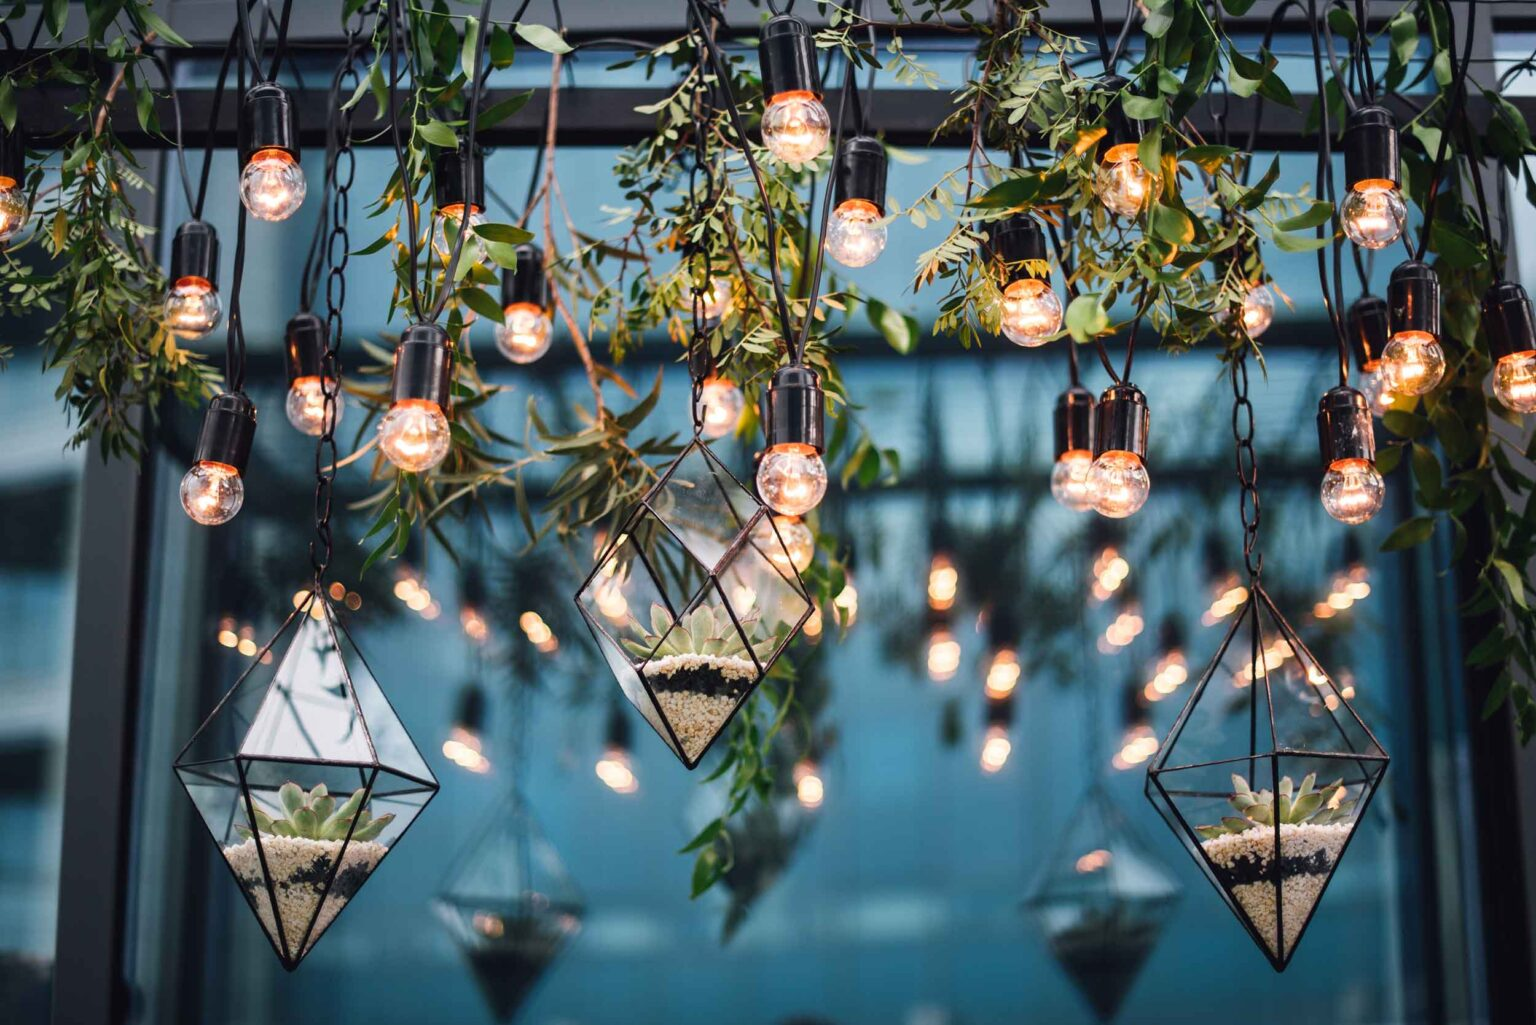 At-Home Weddings: How to Make Your House Party Feel Special